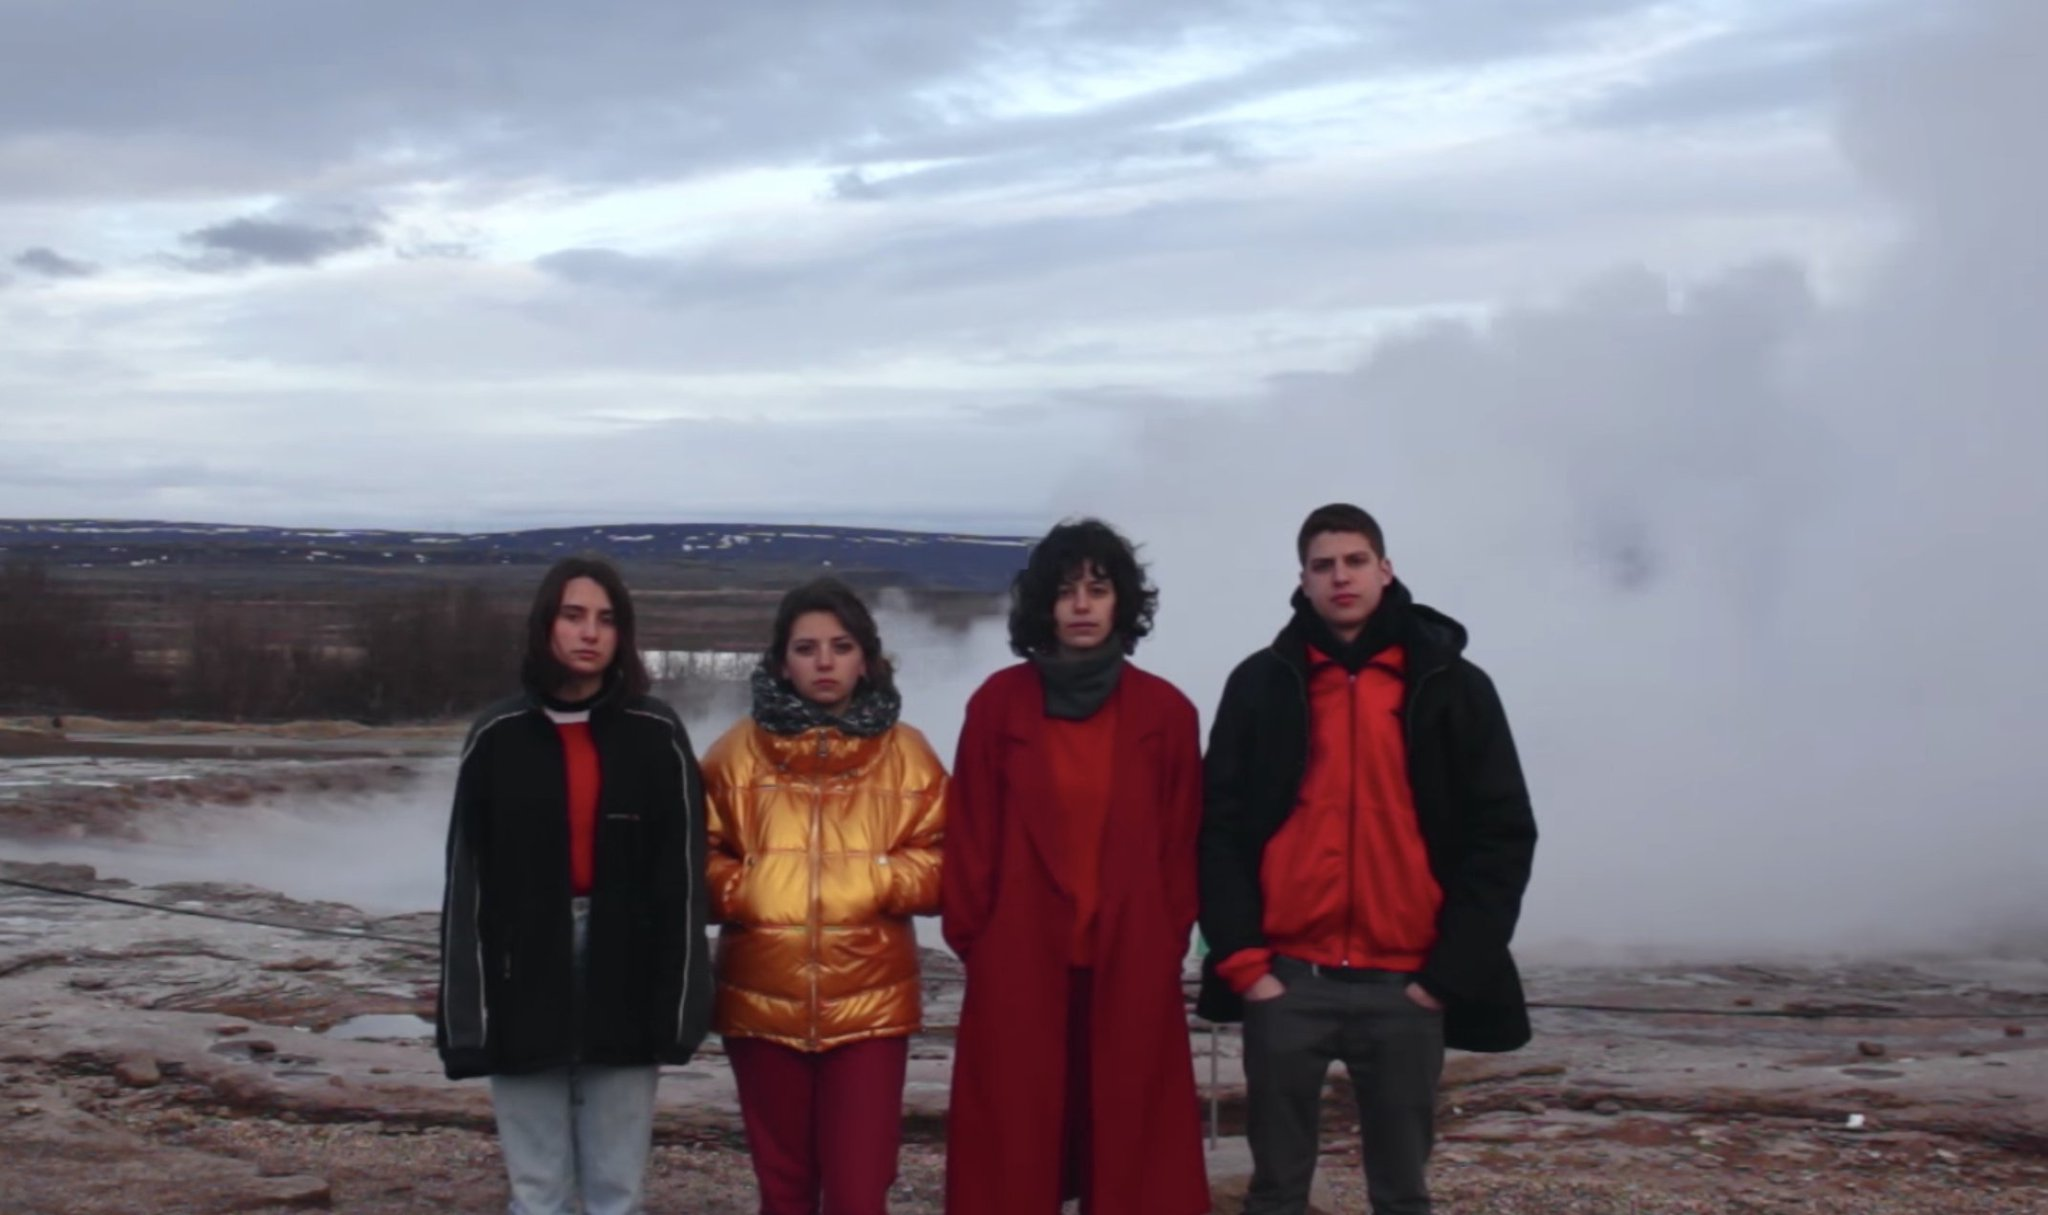 Barcelona punk band @OHMOURN share video for new song 'Fun At The Geysers' https://t.co/szy5C2PAfE https://t.co/2dv2EQzm7E